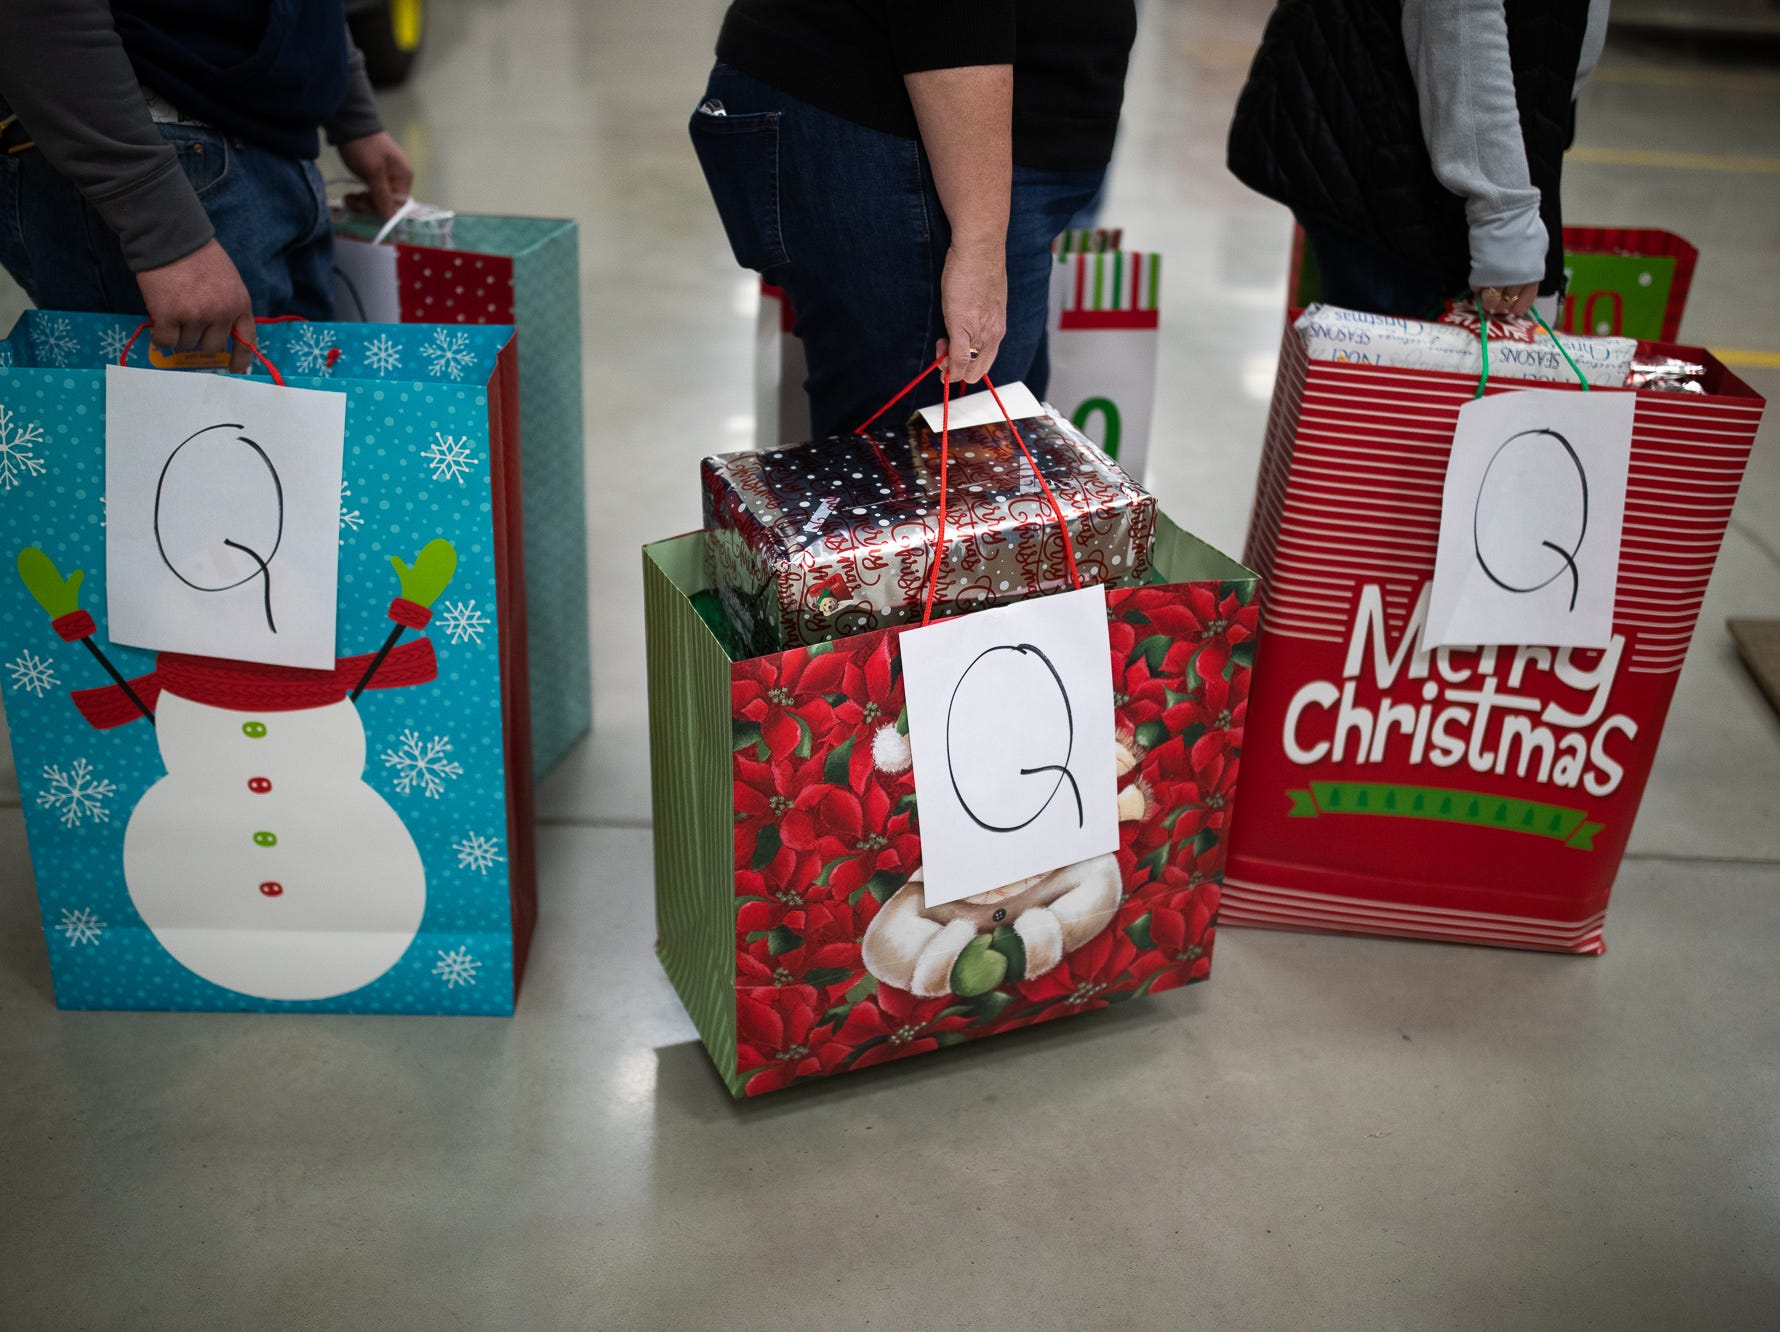 Volunteers load presents at the Southeastern Adams County Volunteer Emergency Services fire station during the S.A.V.E.S Project Santa, Saturday, Dec. 22, 2018, in McSherrystown Borough. The S.A.V.E.S Project Santa donated food, toys, and clothing to 12 local families in need.